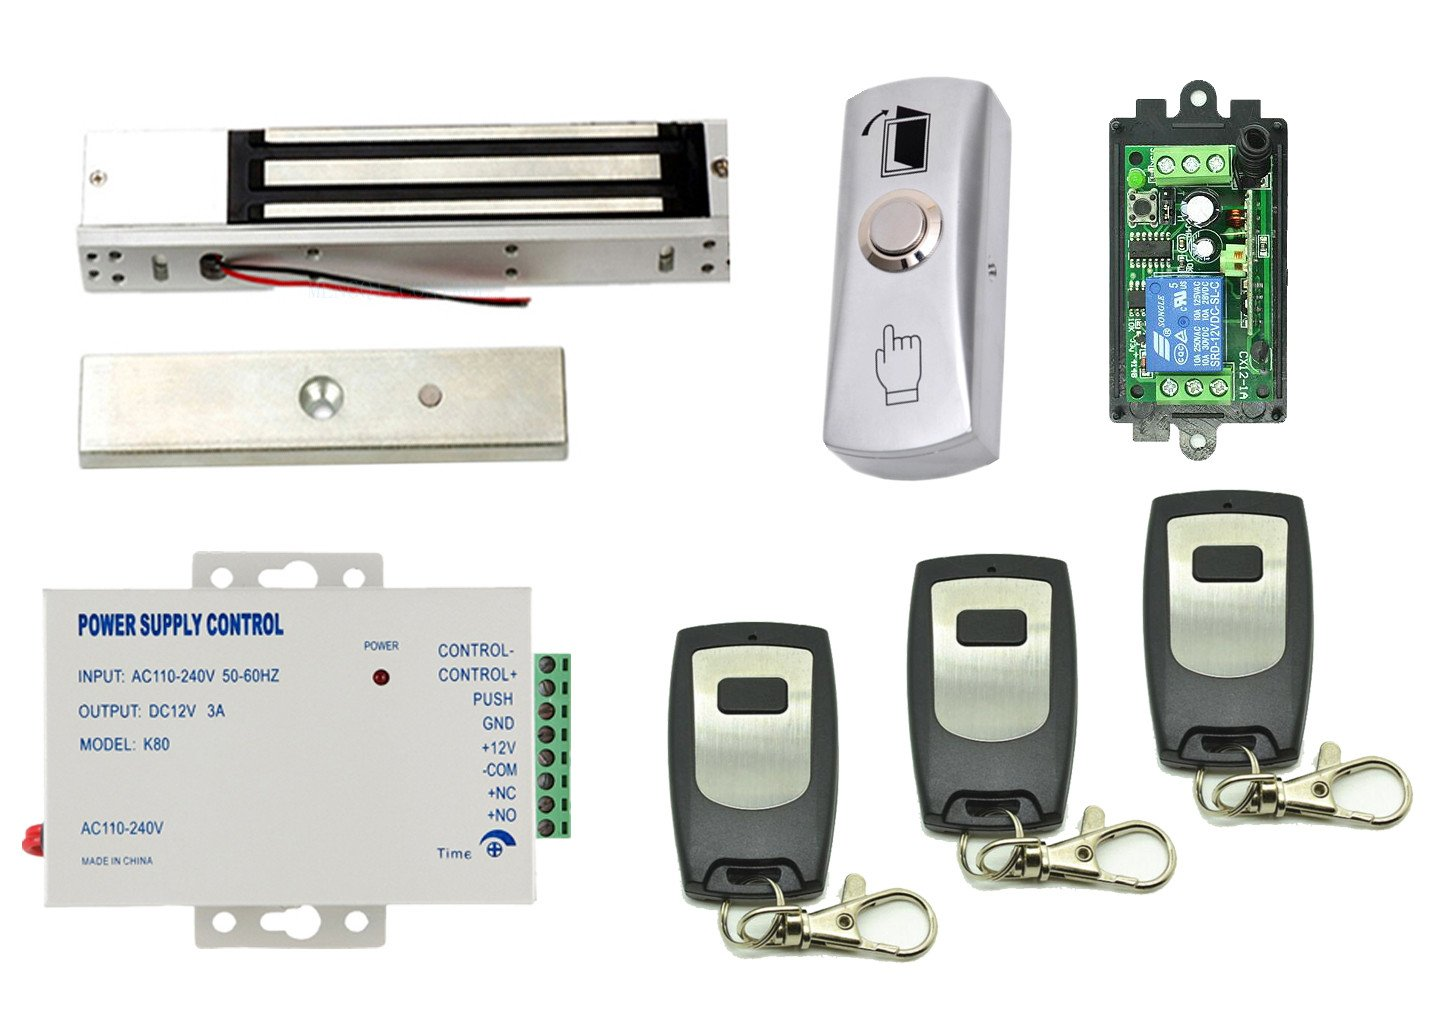 One Door Access Control outswinging Door 600lbs/280kg Force Magnetic Lock kit with 1 Wireless Receiver +3 Remote Control +110V Power Supply+Mounted Exit Button SecureControl